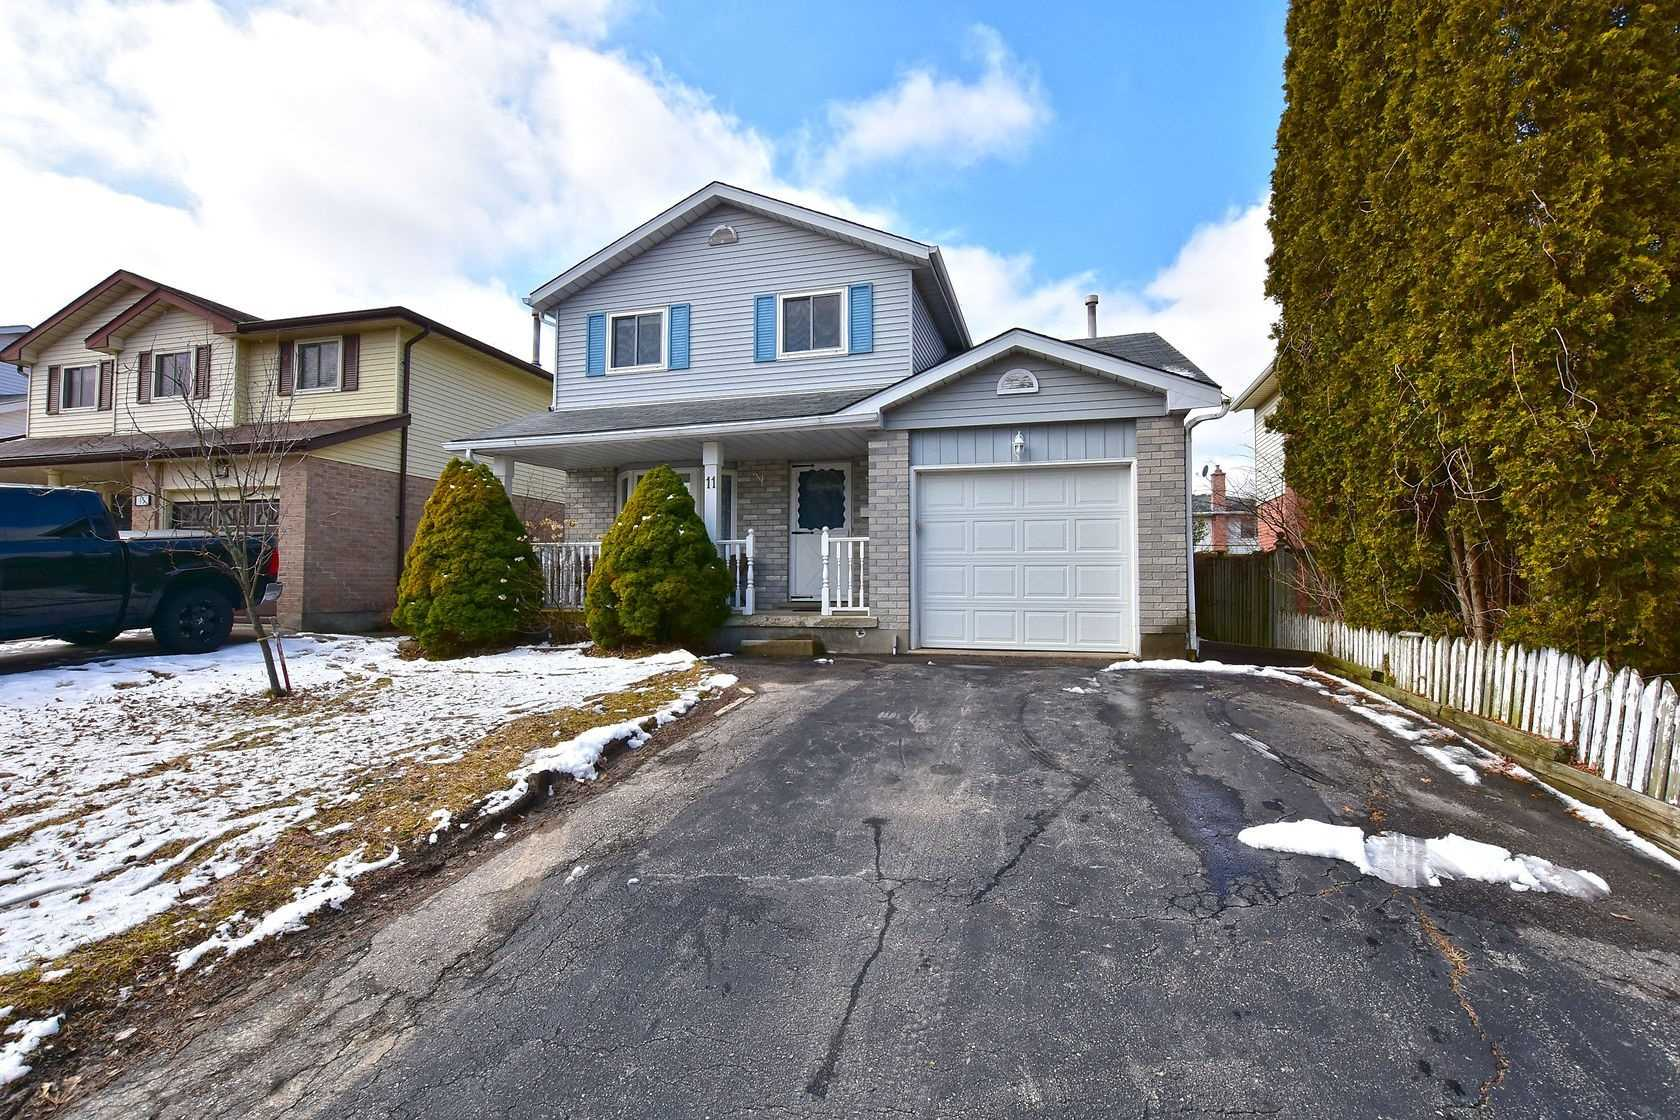 pictures of house for sale MLS: X4732142 located at 11 Summerhill Cres, Kitchener N2N2X9